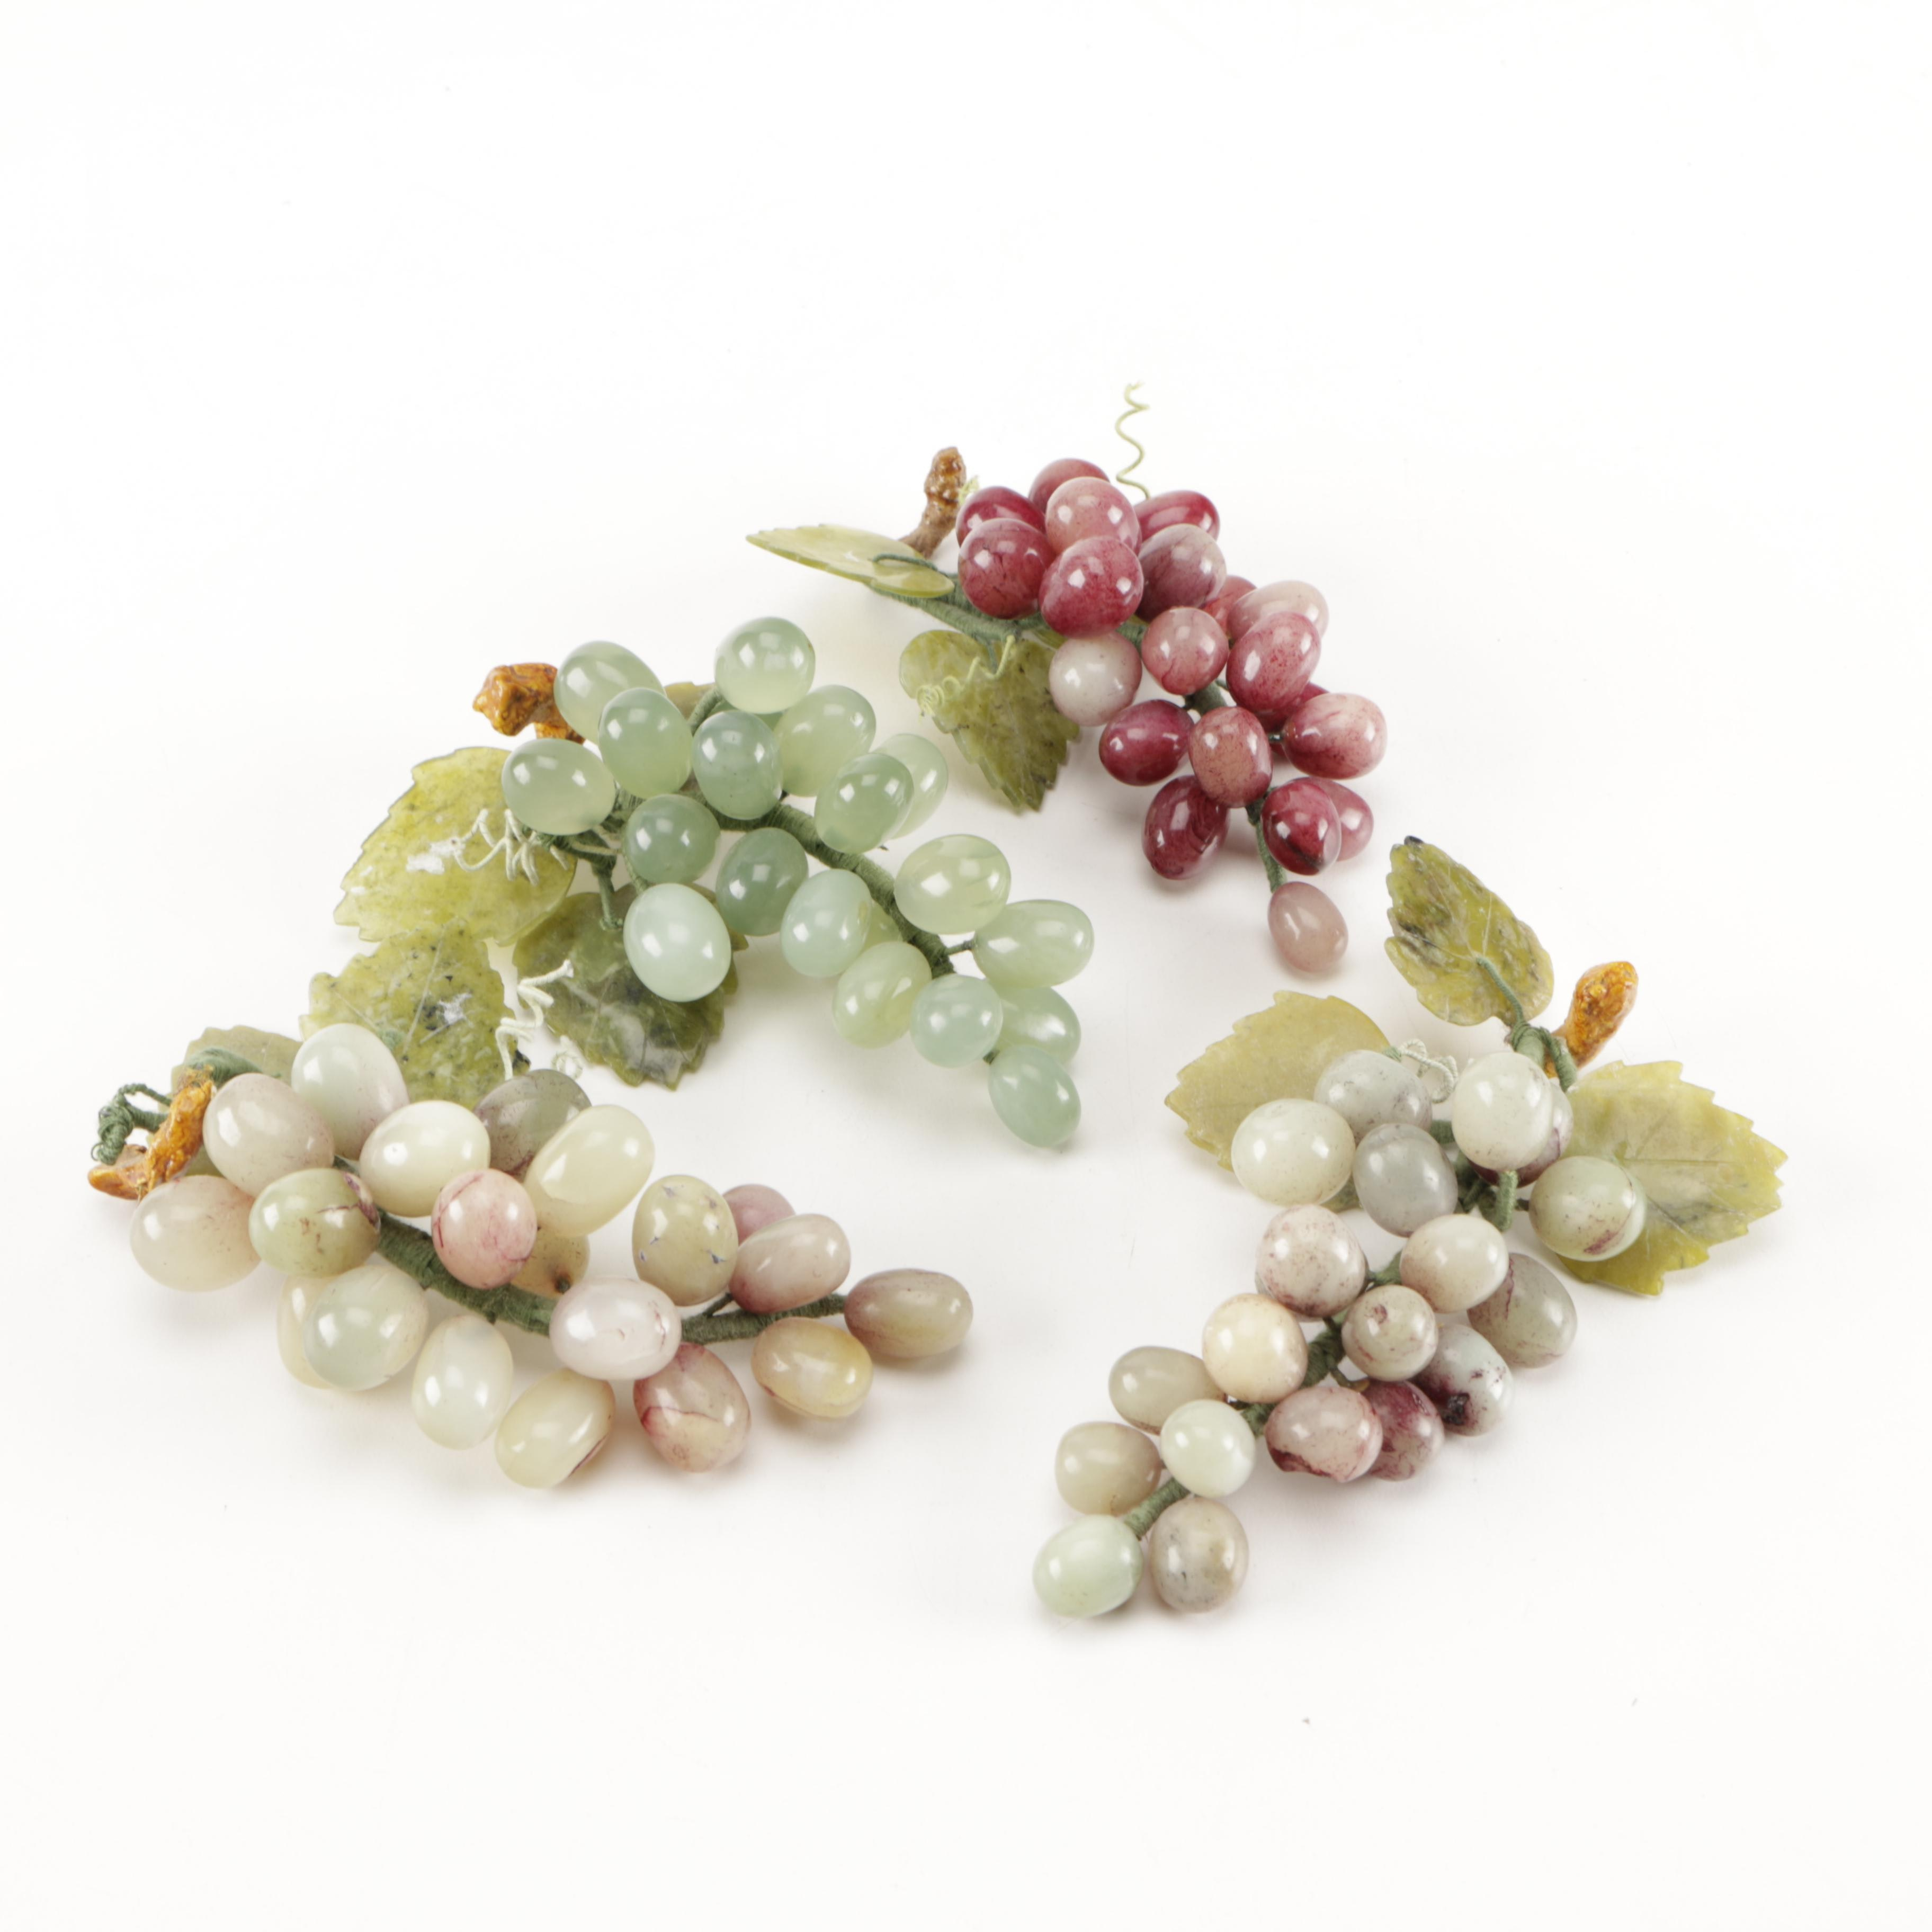 Agate and Soapstone Grape Clusters